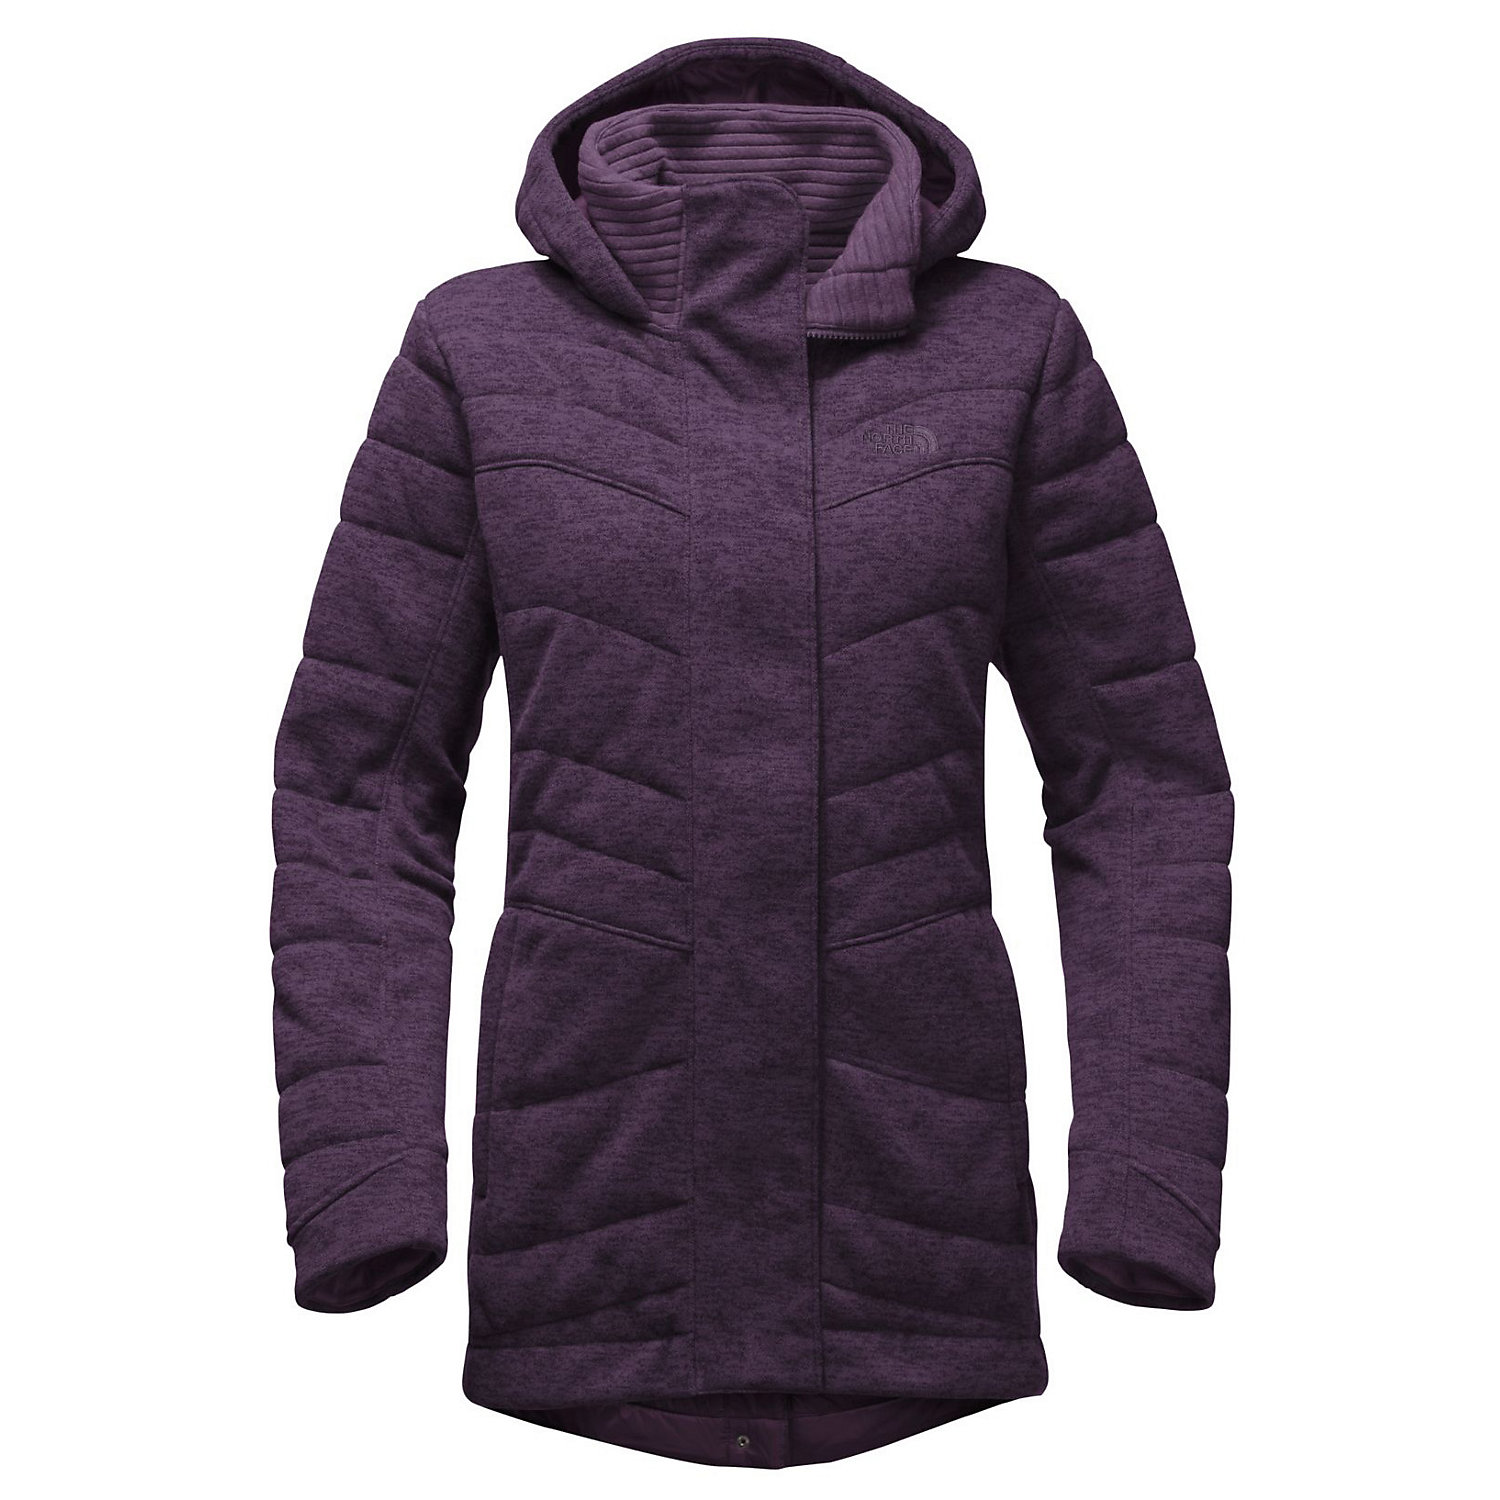 76c054497 The North Face Women's Indi Insulated Parka